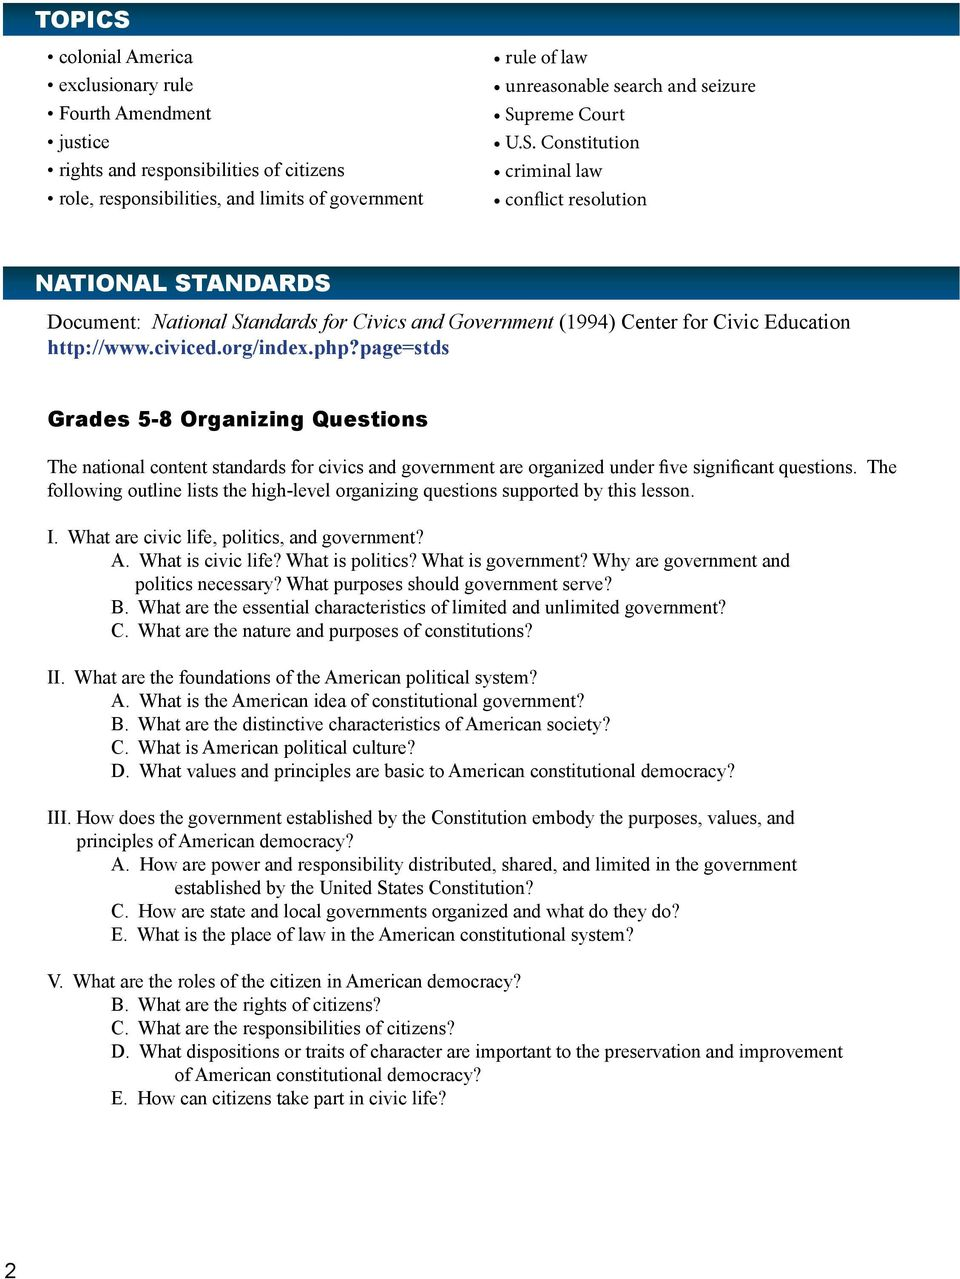 limited and unlimited government worksheet